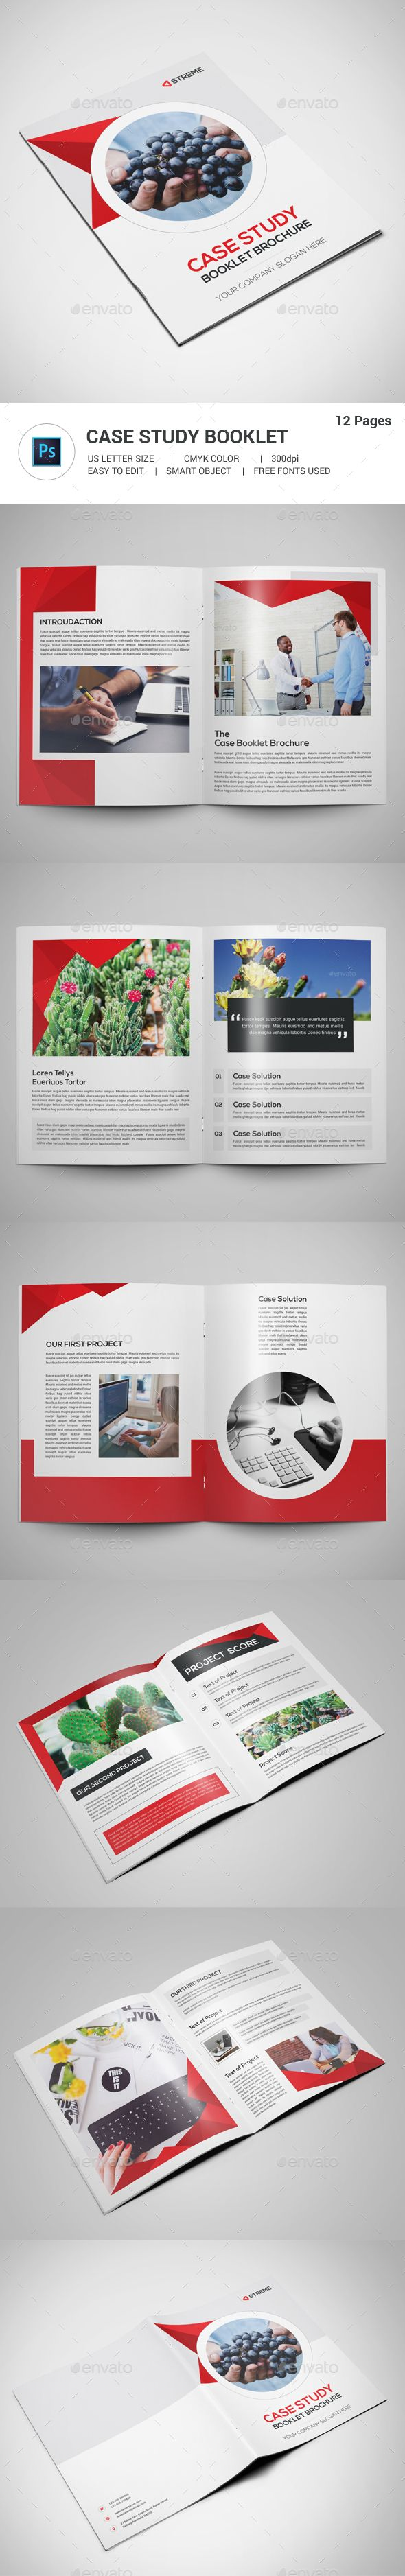 Best Case Study Templates Images On Pinterest Page Layout - Brochure booklet templates